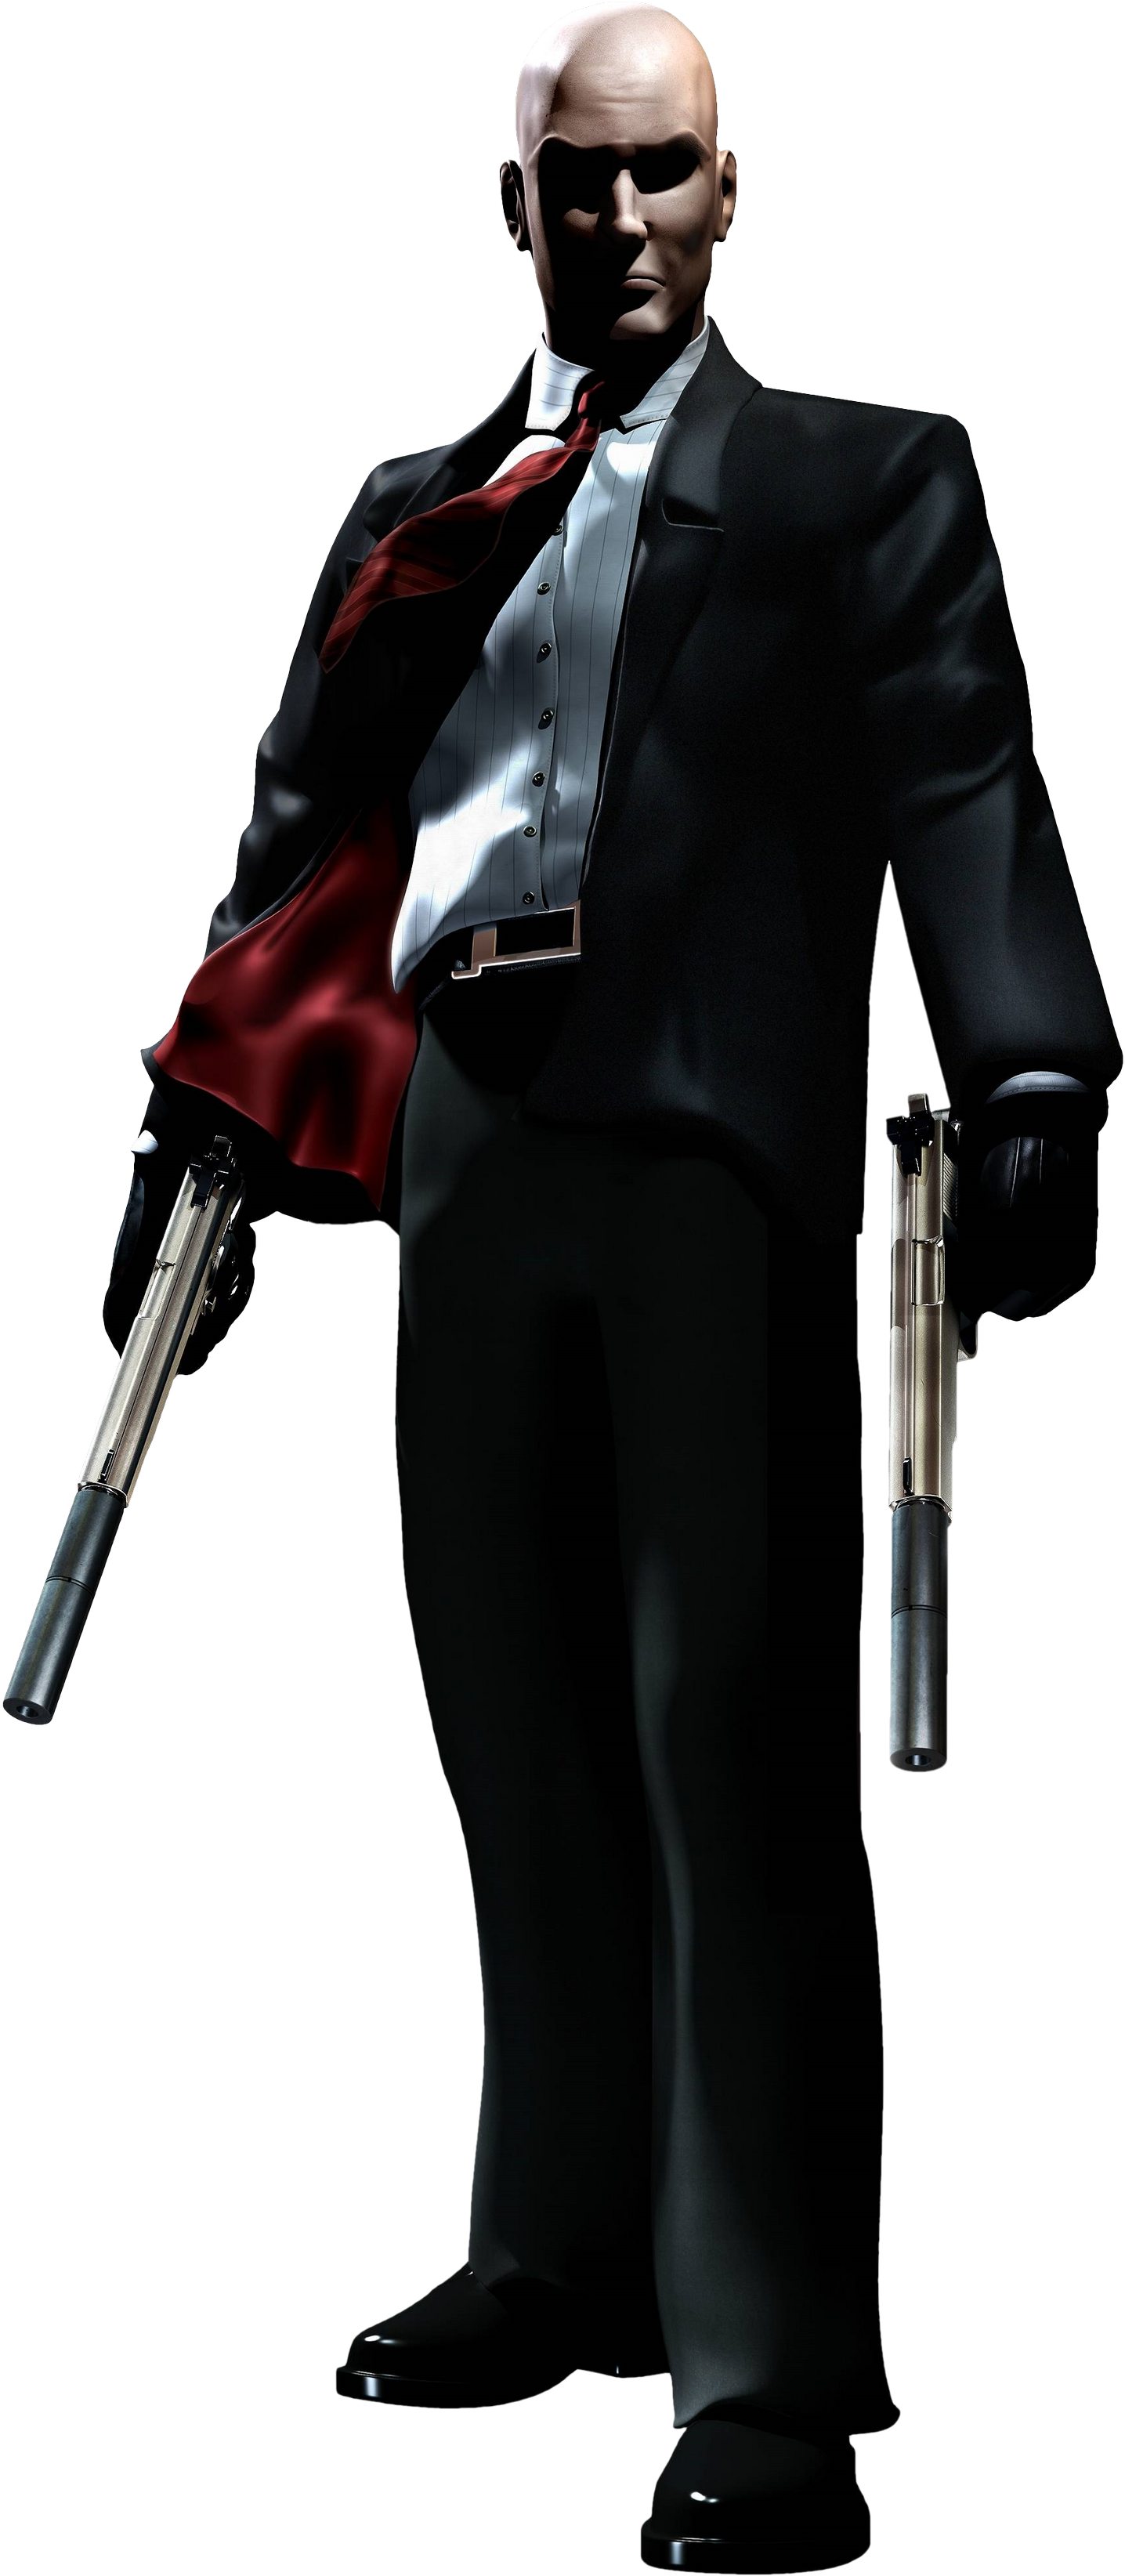 Hitman Png Photo Cheat Hitman 2 Silent Assassin.